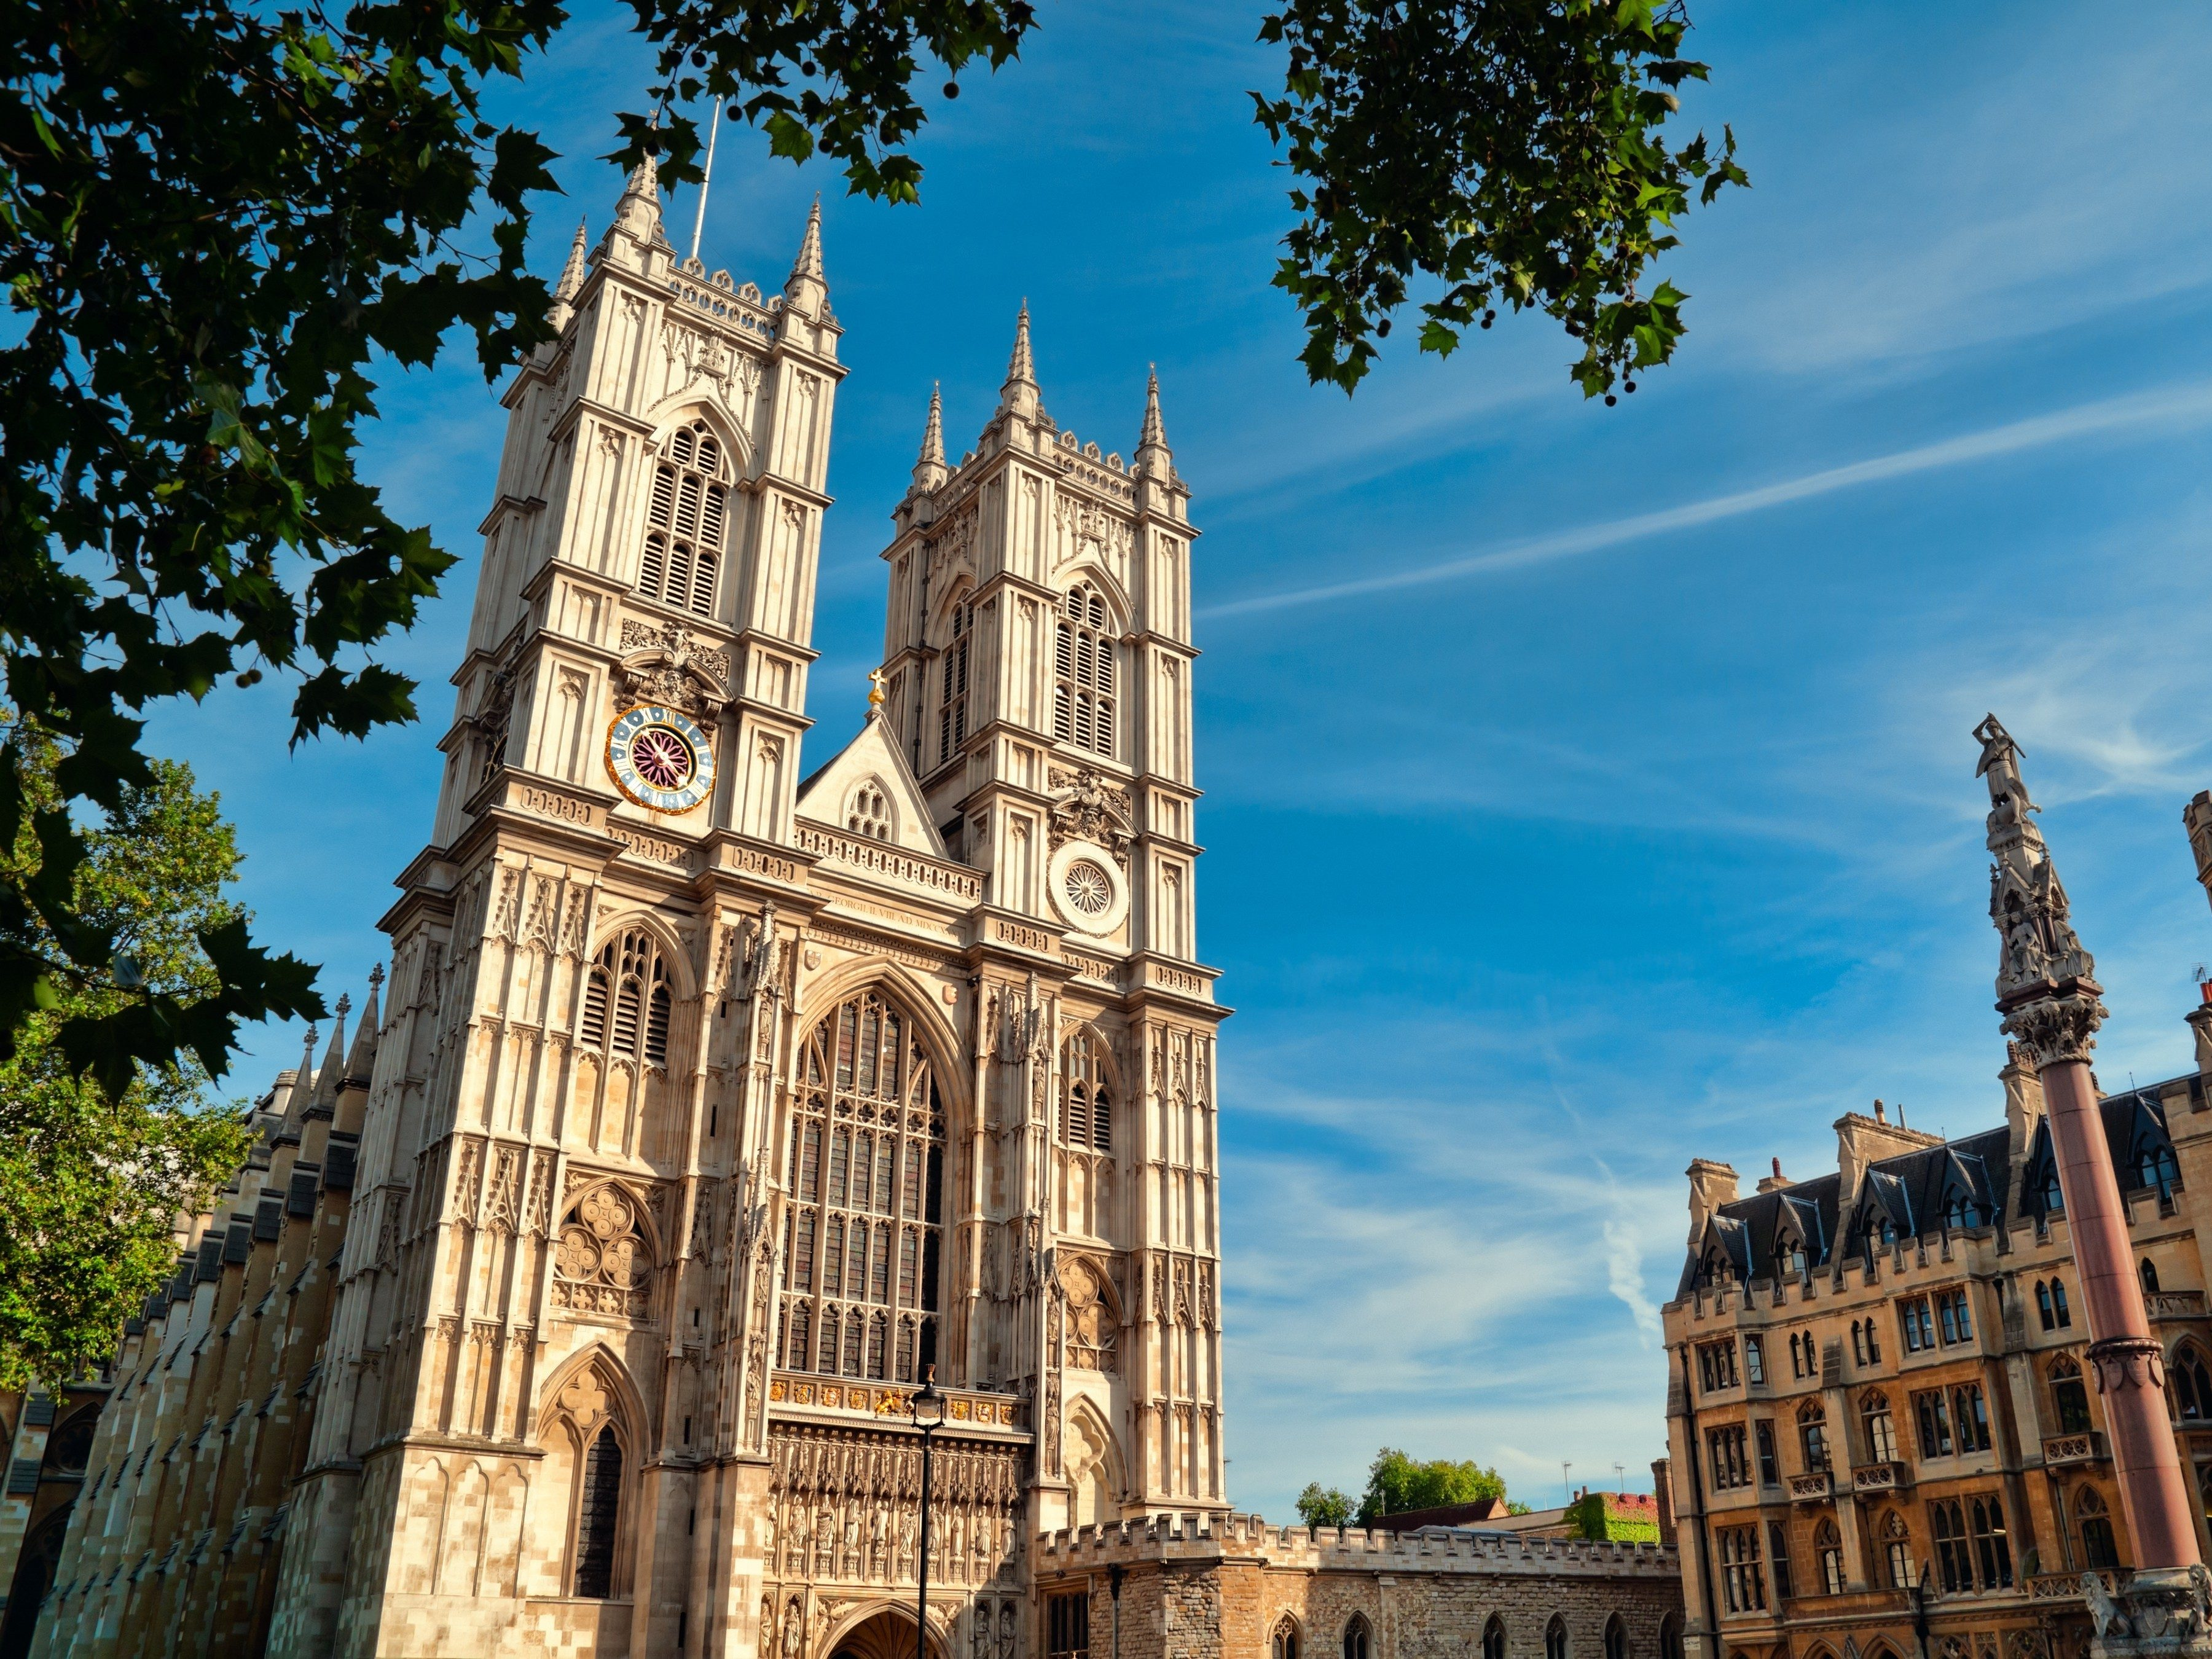 6. Westminster Abbey